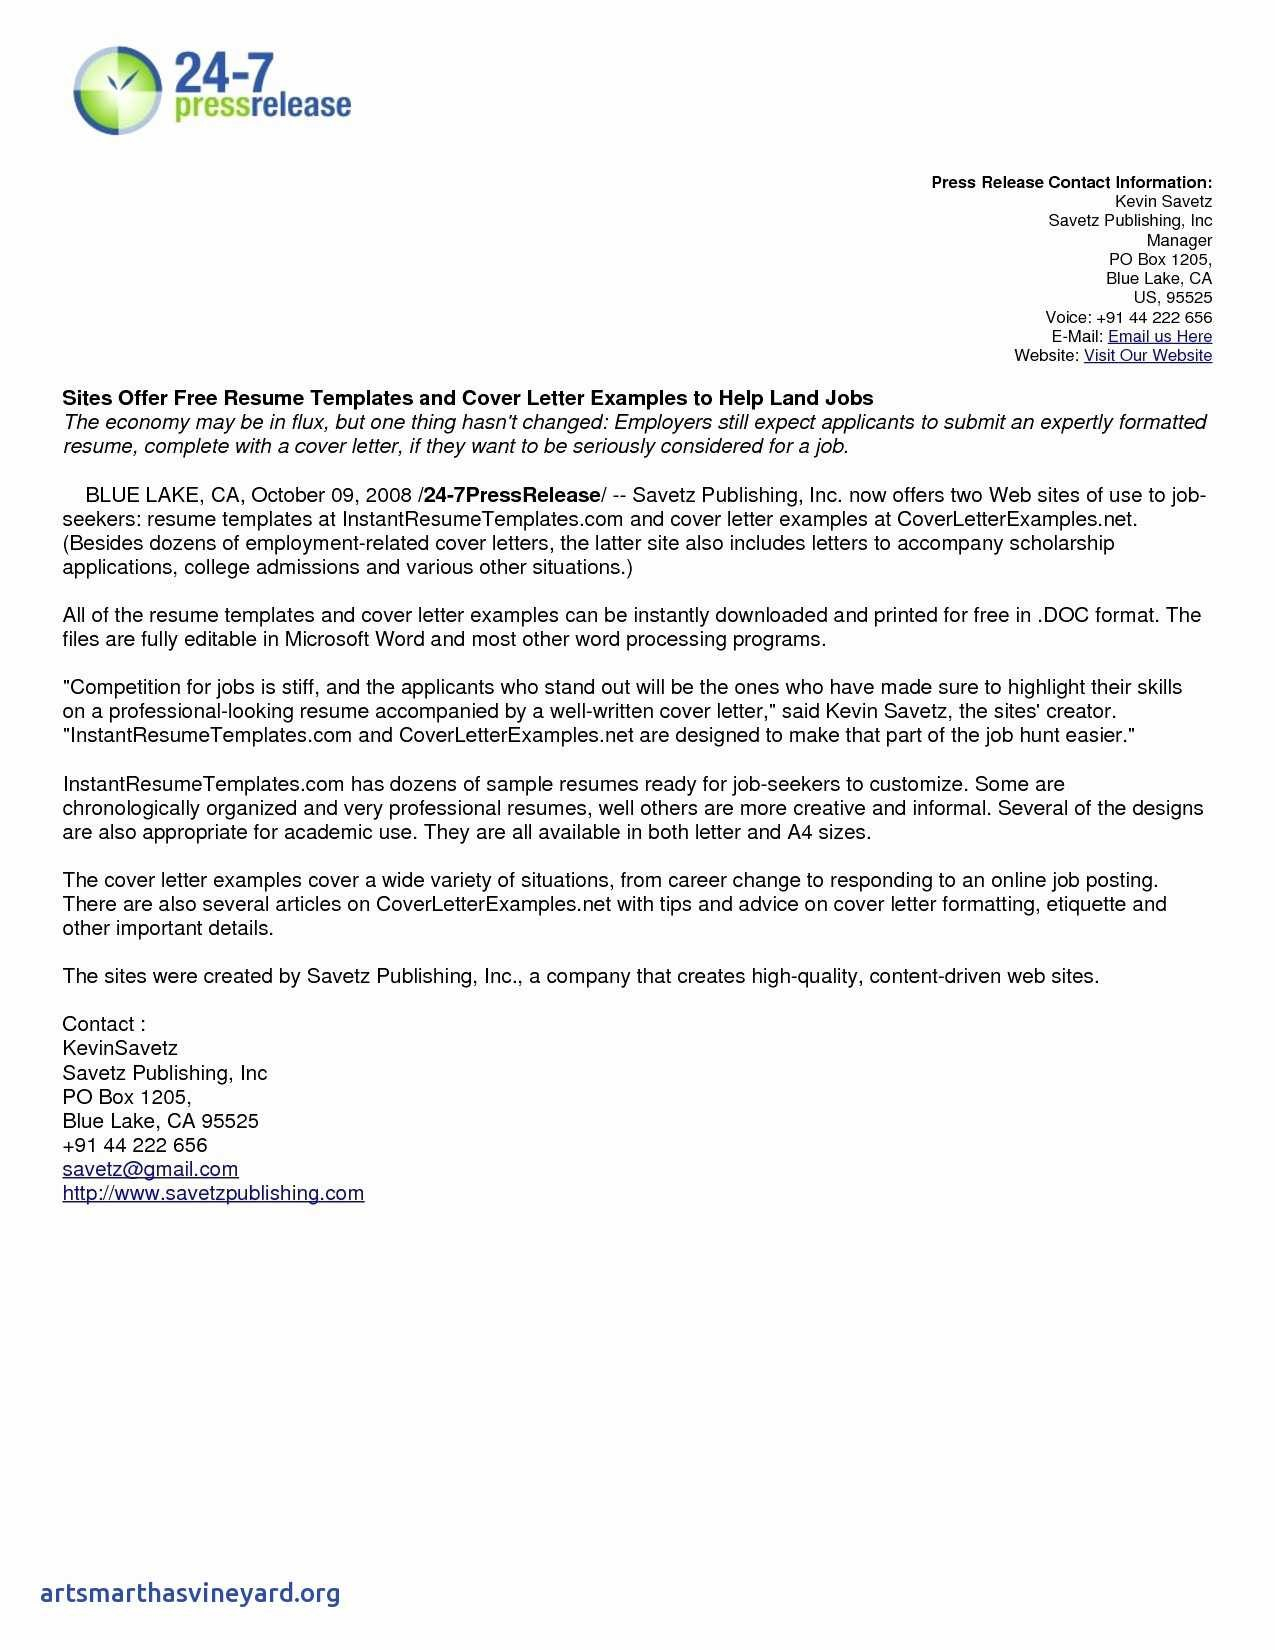 Business Cover Letter Template Microsoft Word Gallery Pertaining To Site Visit Report Template Free Download